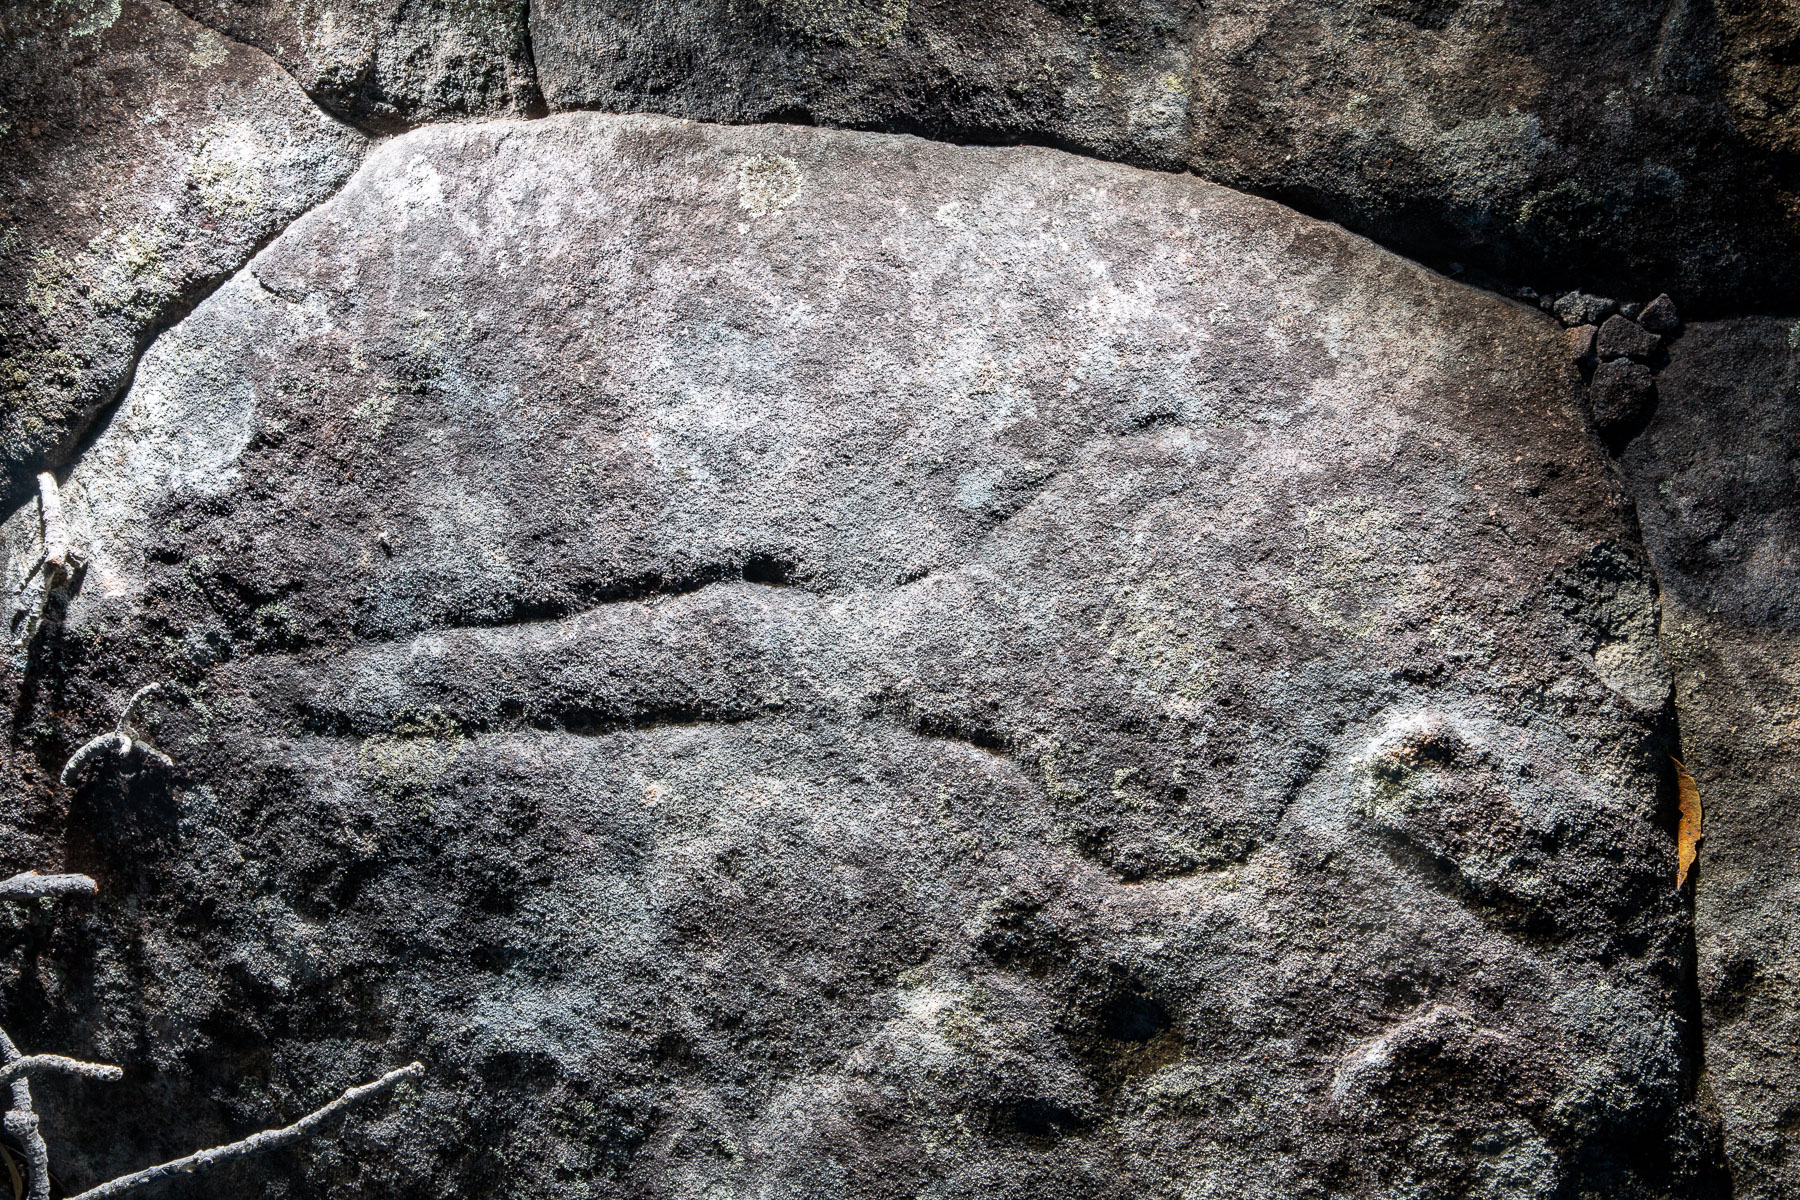 Aboriginal engraving of a club at Tpham Hill (West Head)